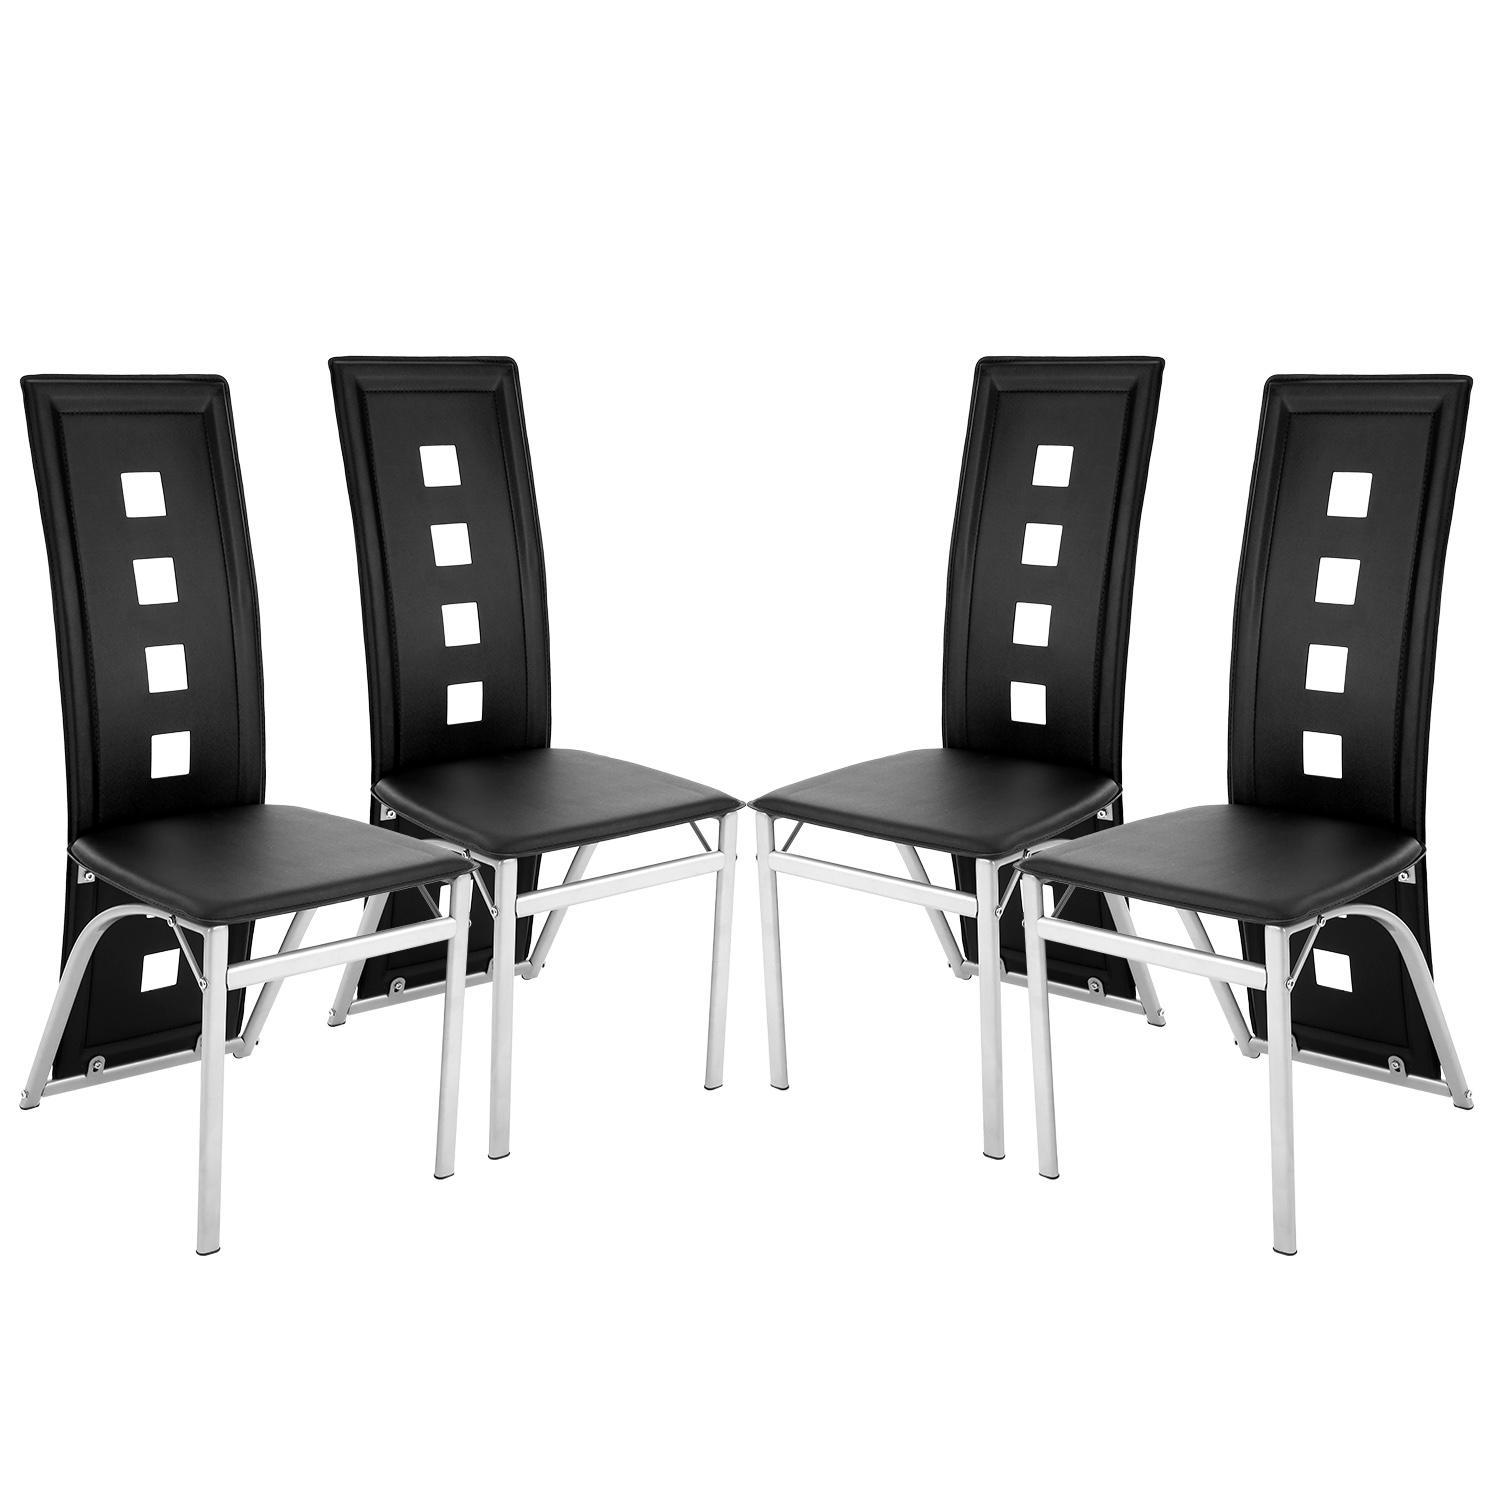 Big promotion ! Set of 4 Modern Dining Chair, High Back Chair for Home Kitchen Restaurant Black BLLK